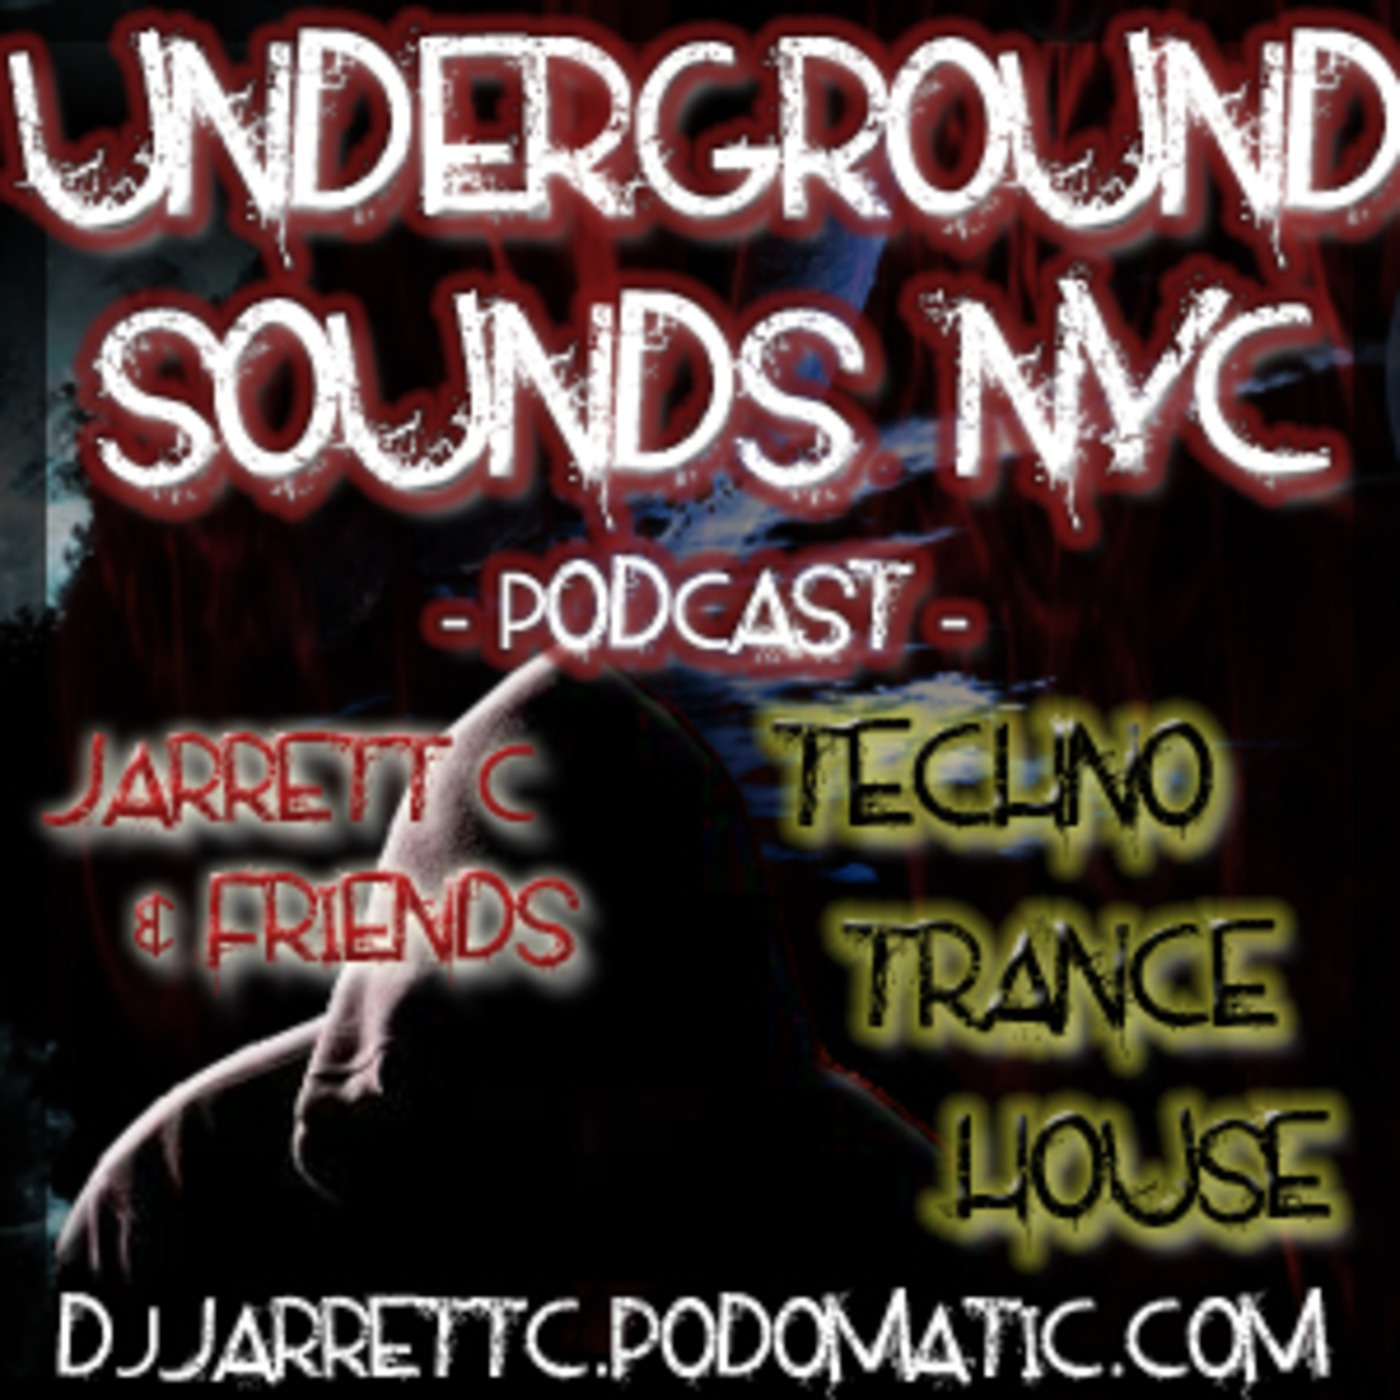 Underground Sounds NYC